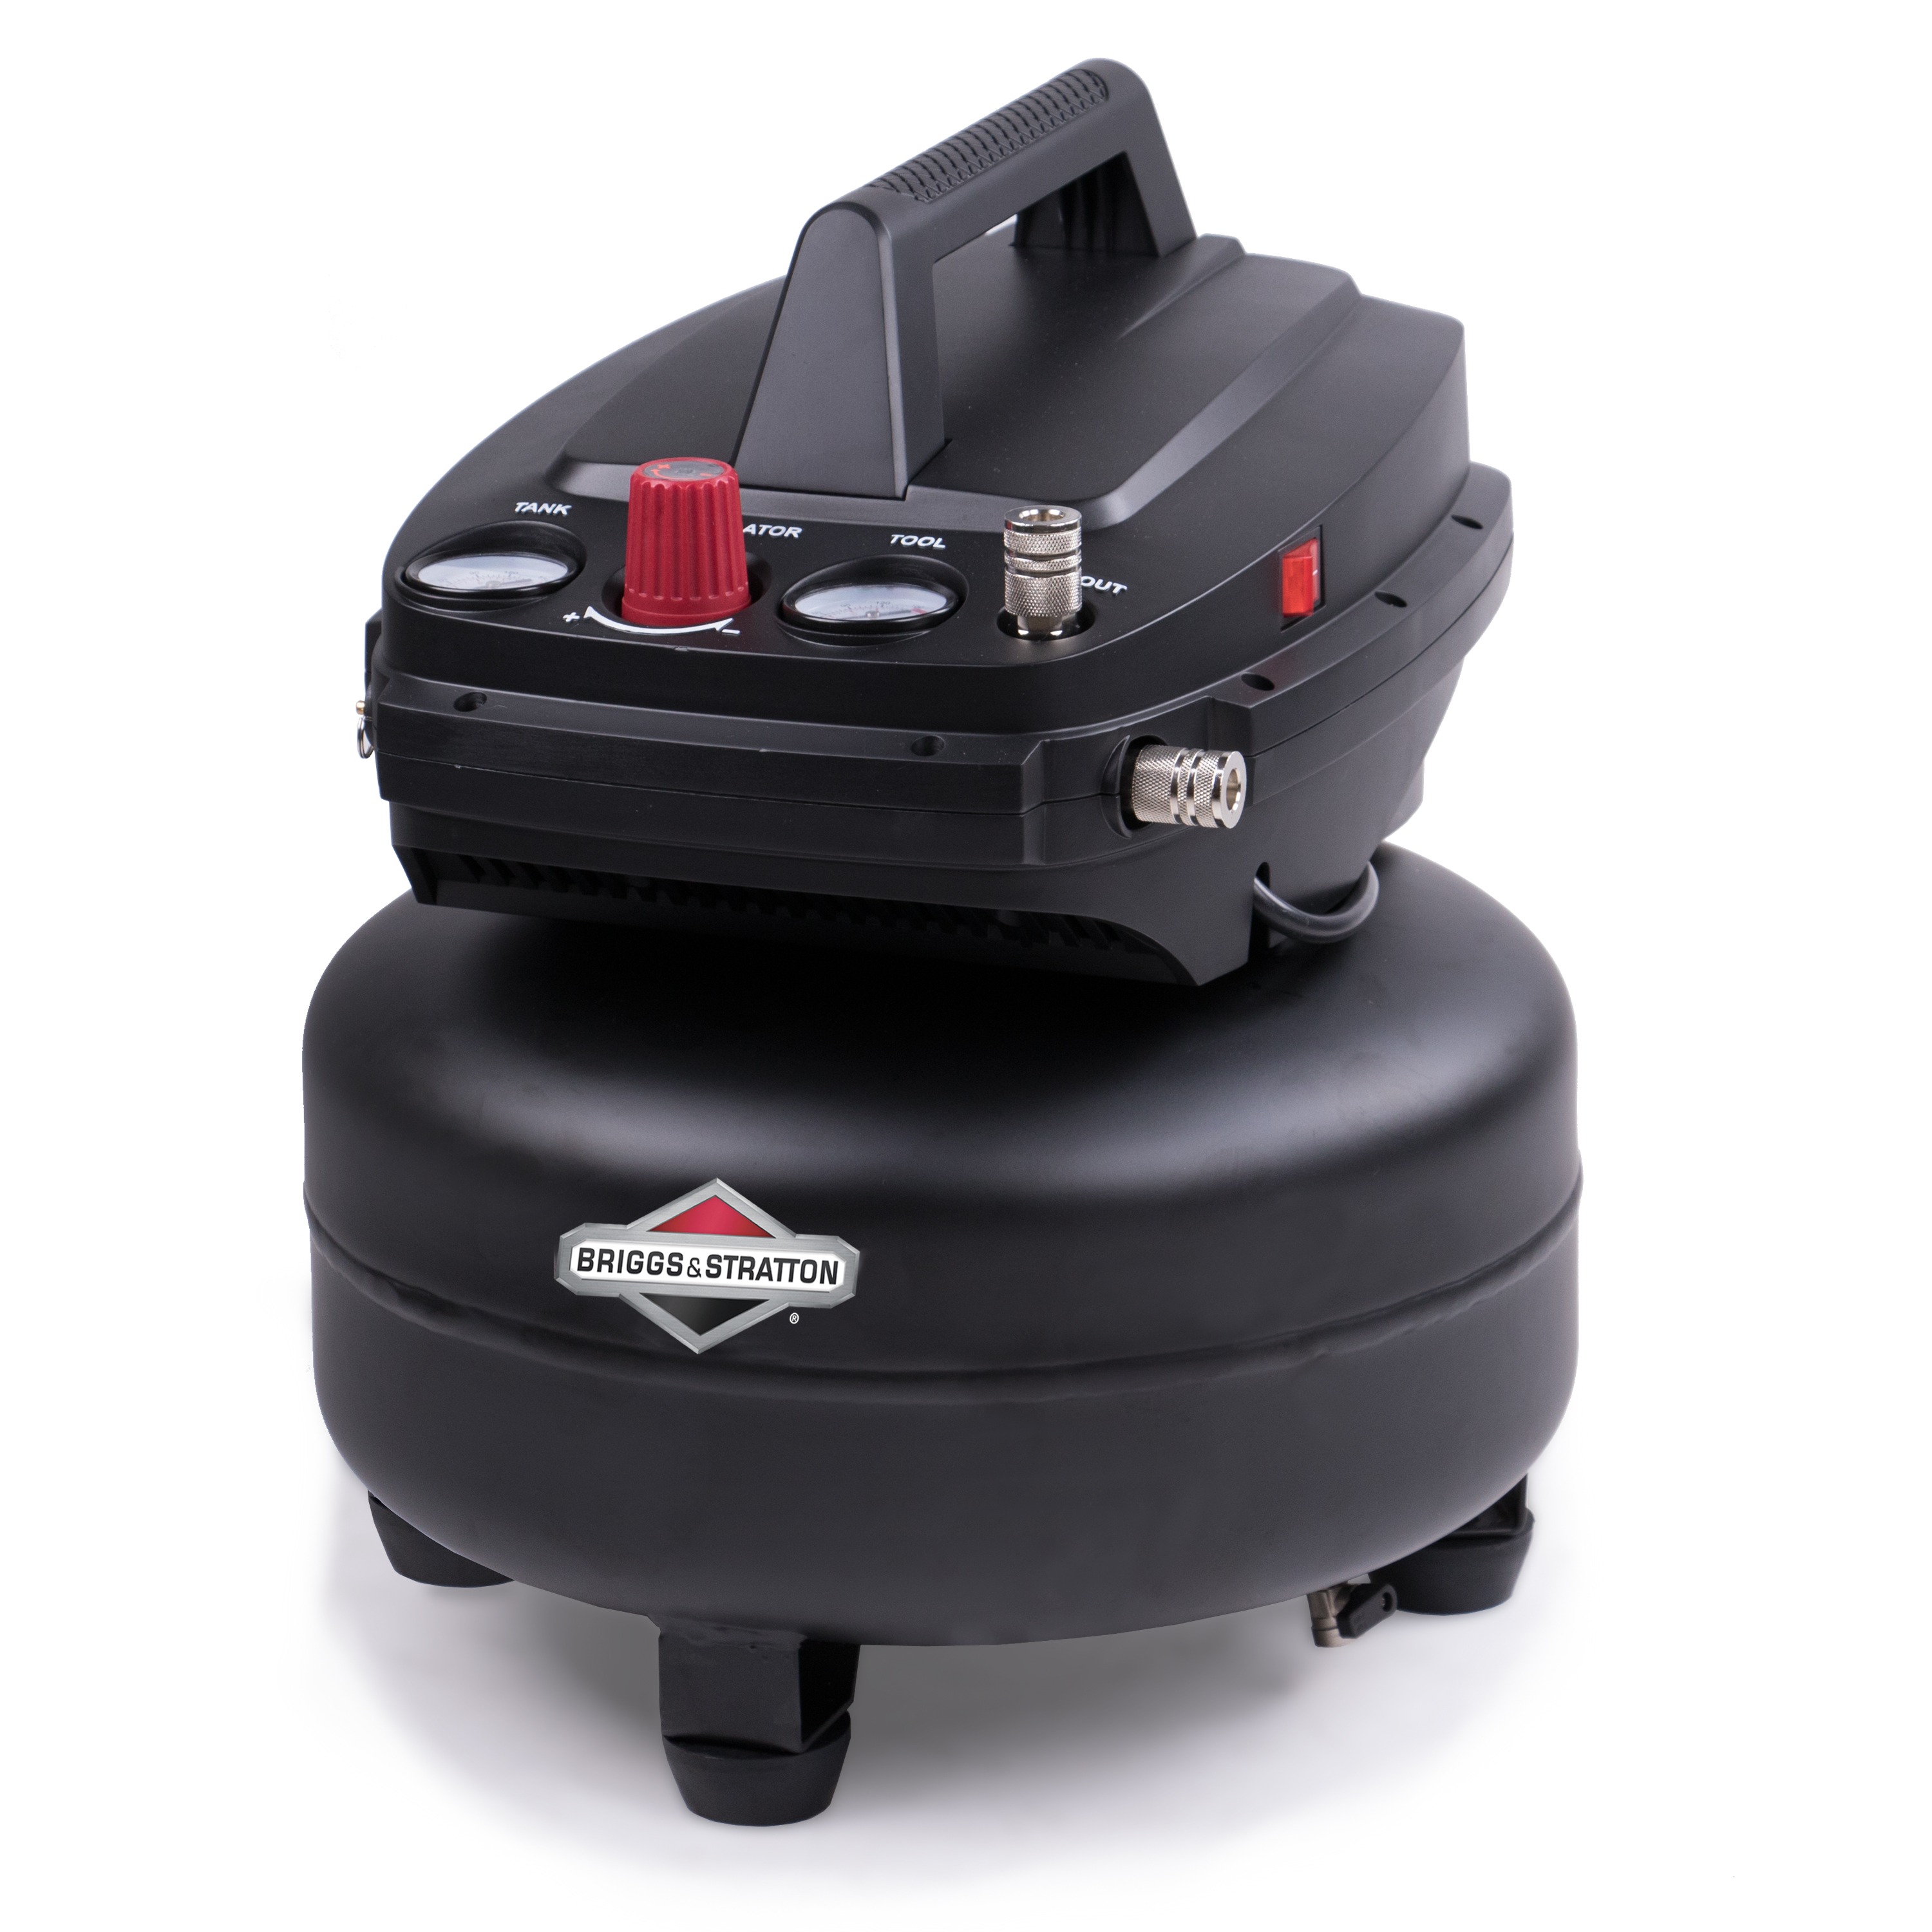 Briggs & Stratton 6 gallon air compressor, 0210642